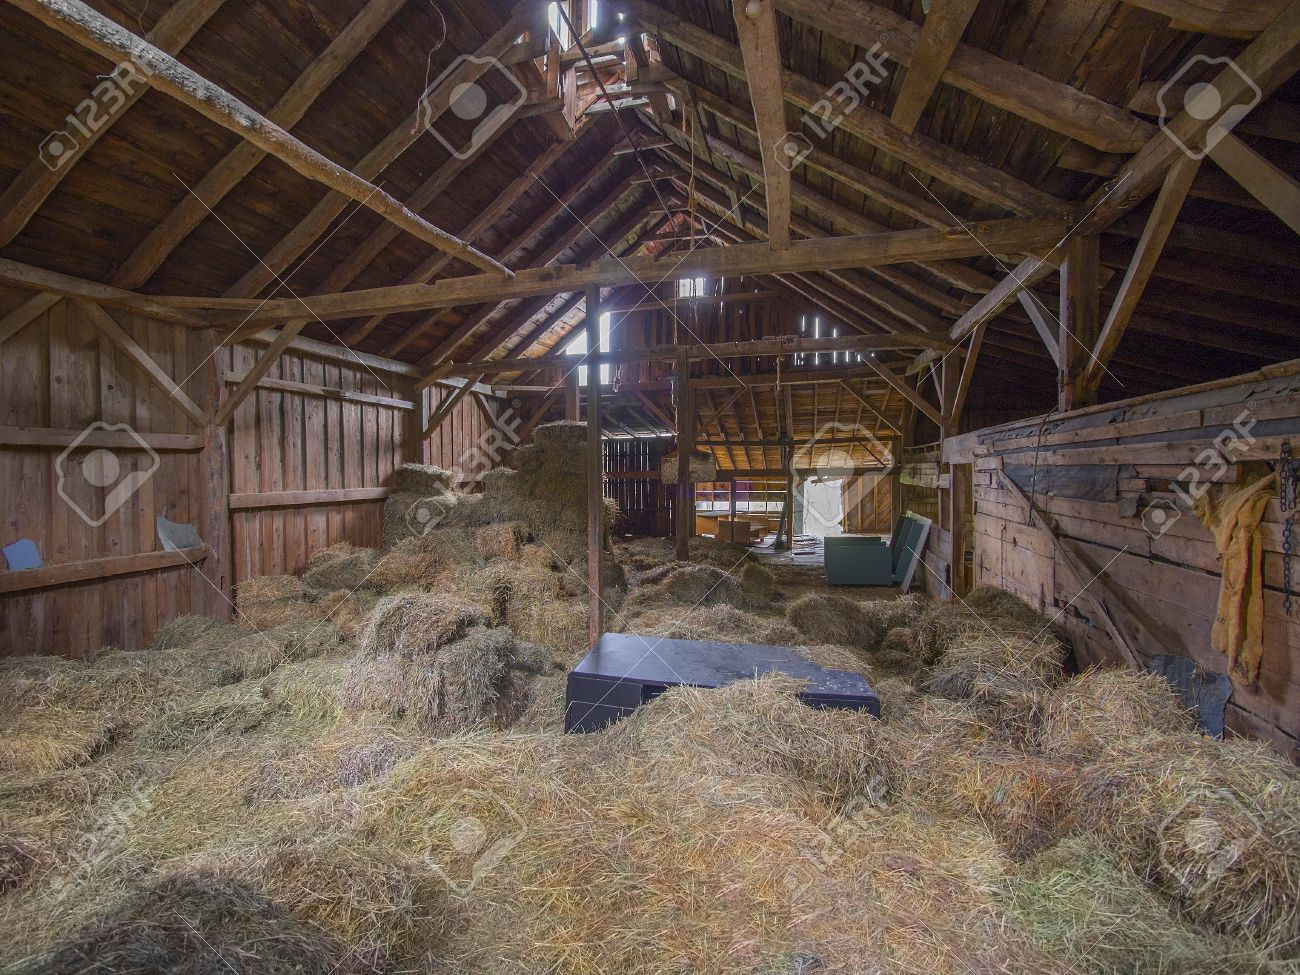 Old Post And Beam Barn Interior With Hay On The Floor Stock Photo